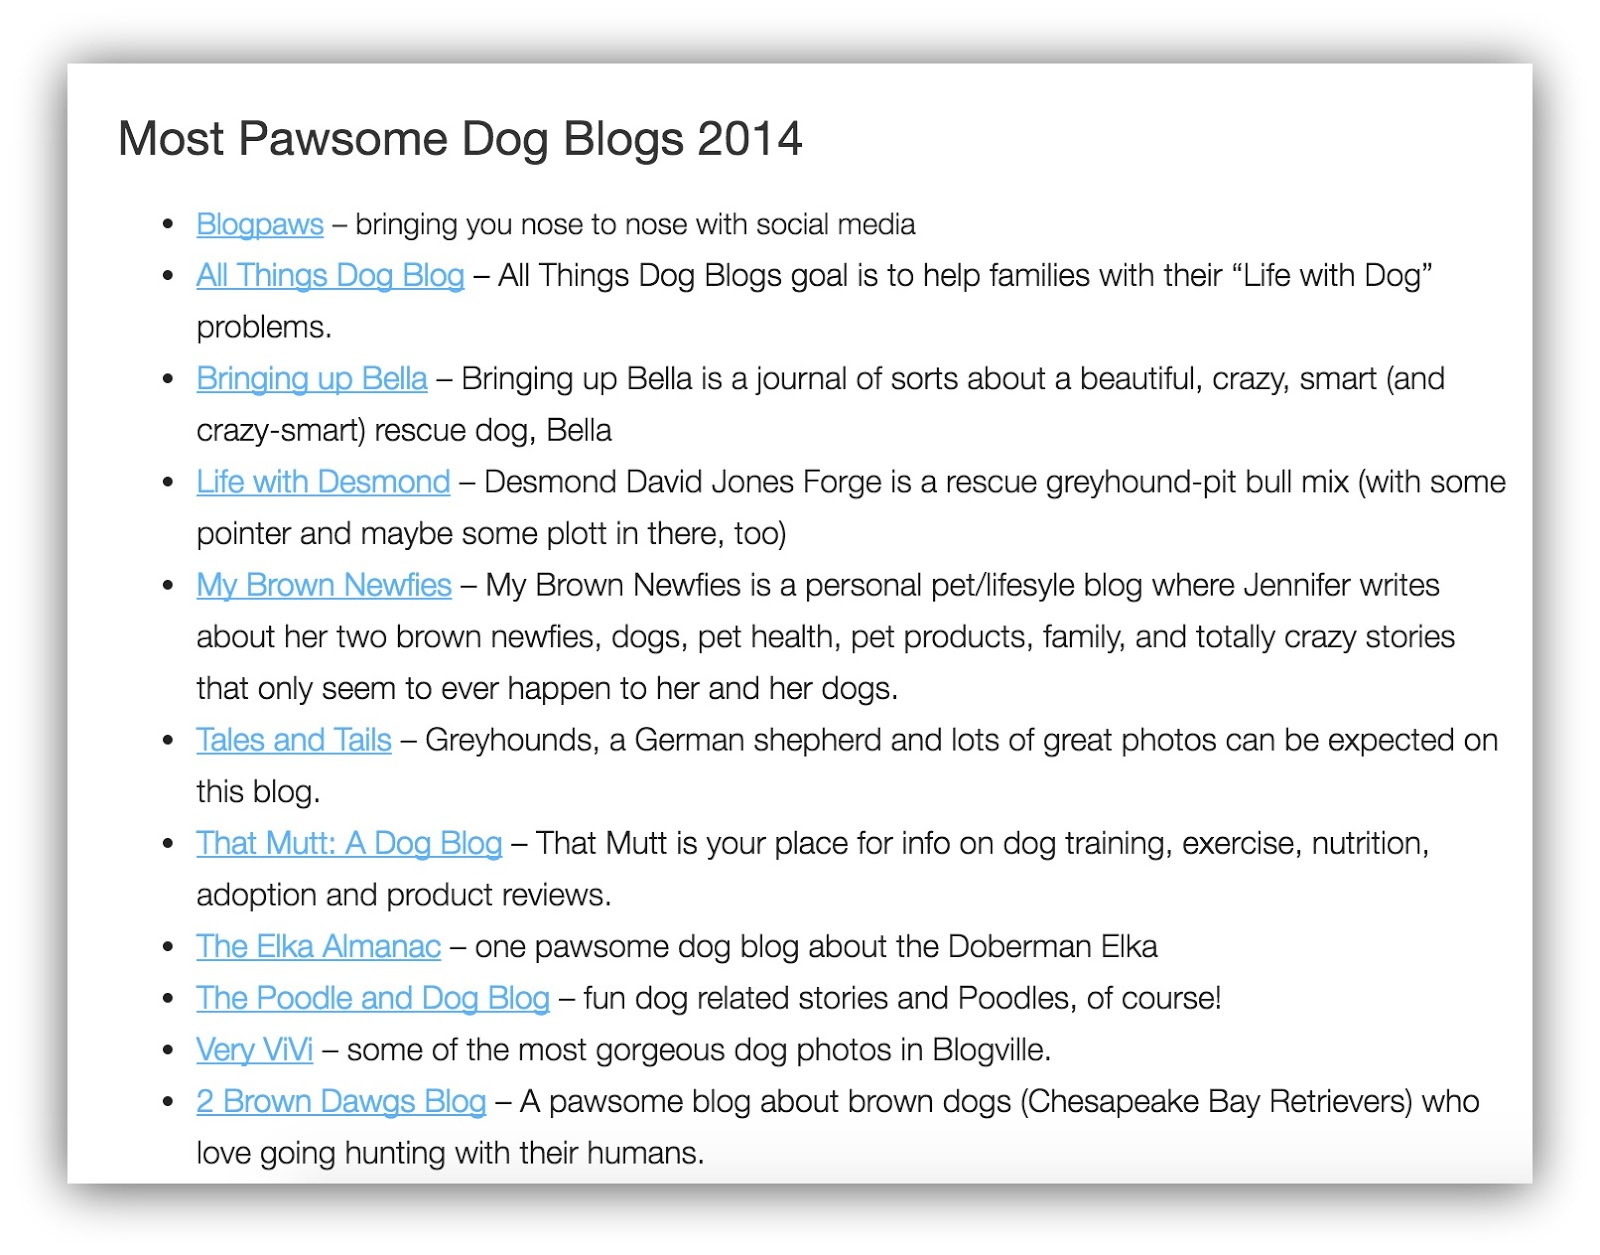 top dog blogs in 2014